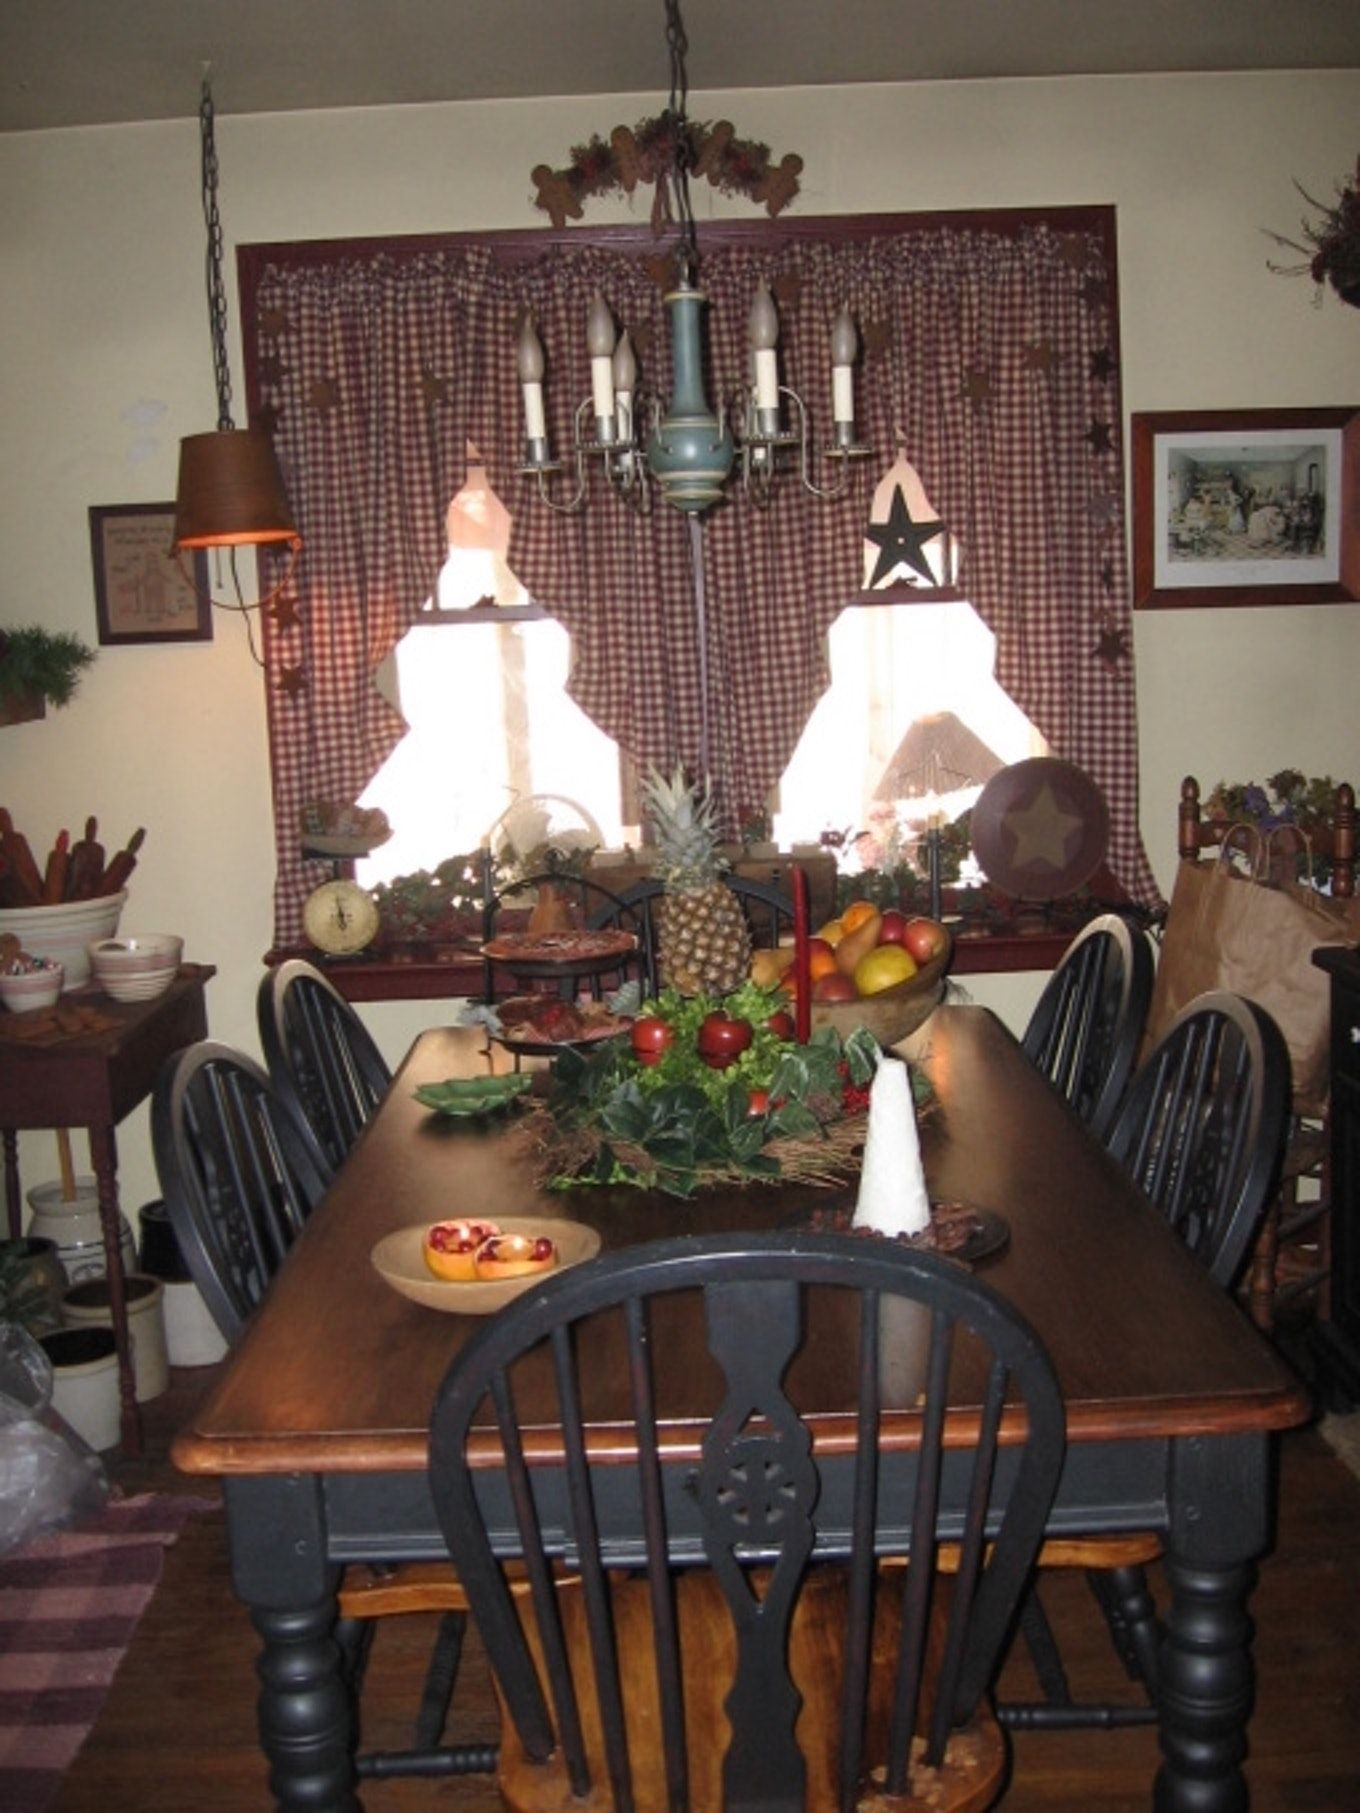 Primitive Decor Ideas Living Room For Christmas Photo Gallery About Room Decor Primitive Dining Rooms Primitive Dining Room Primitive Decorating Country